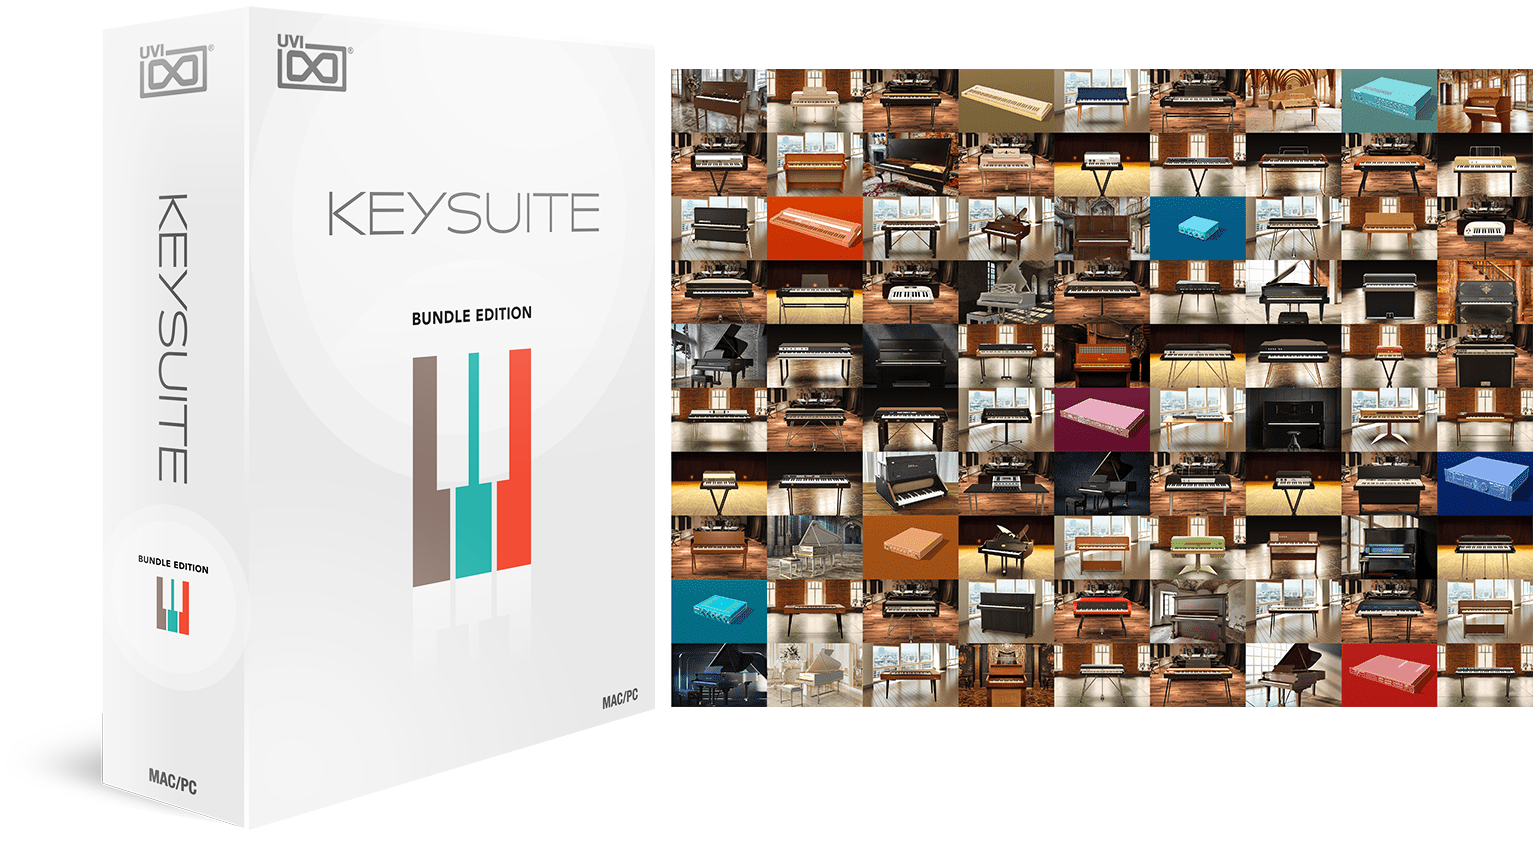 Key Suite Bundle Edition